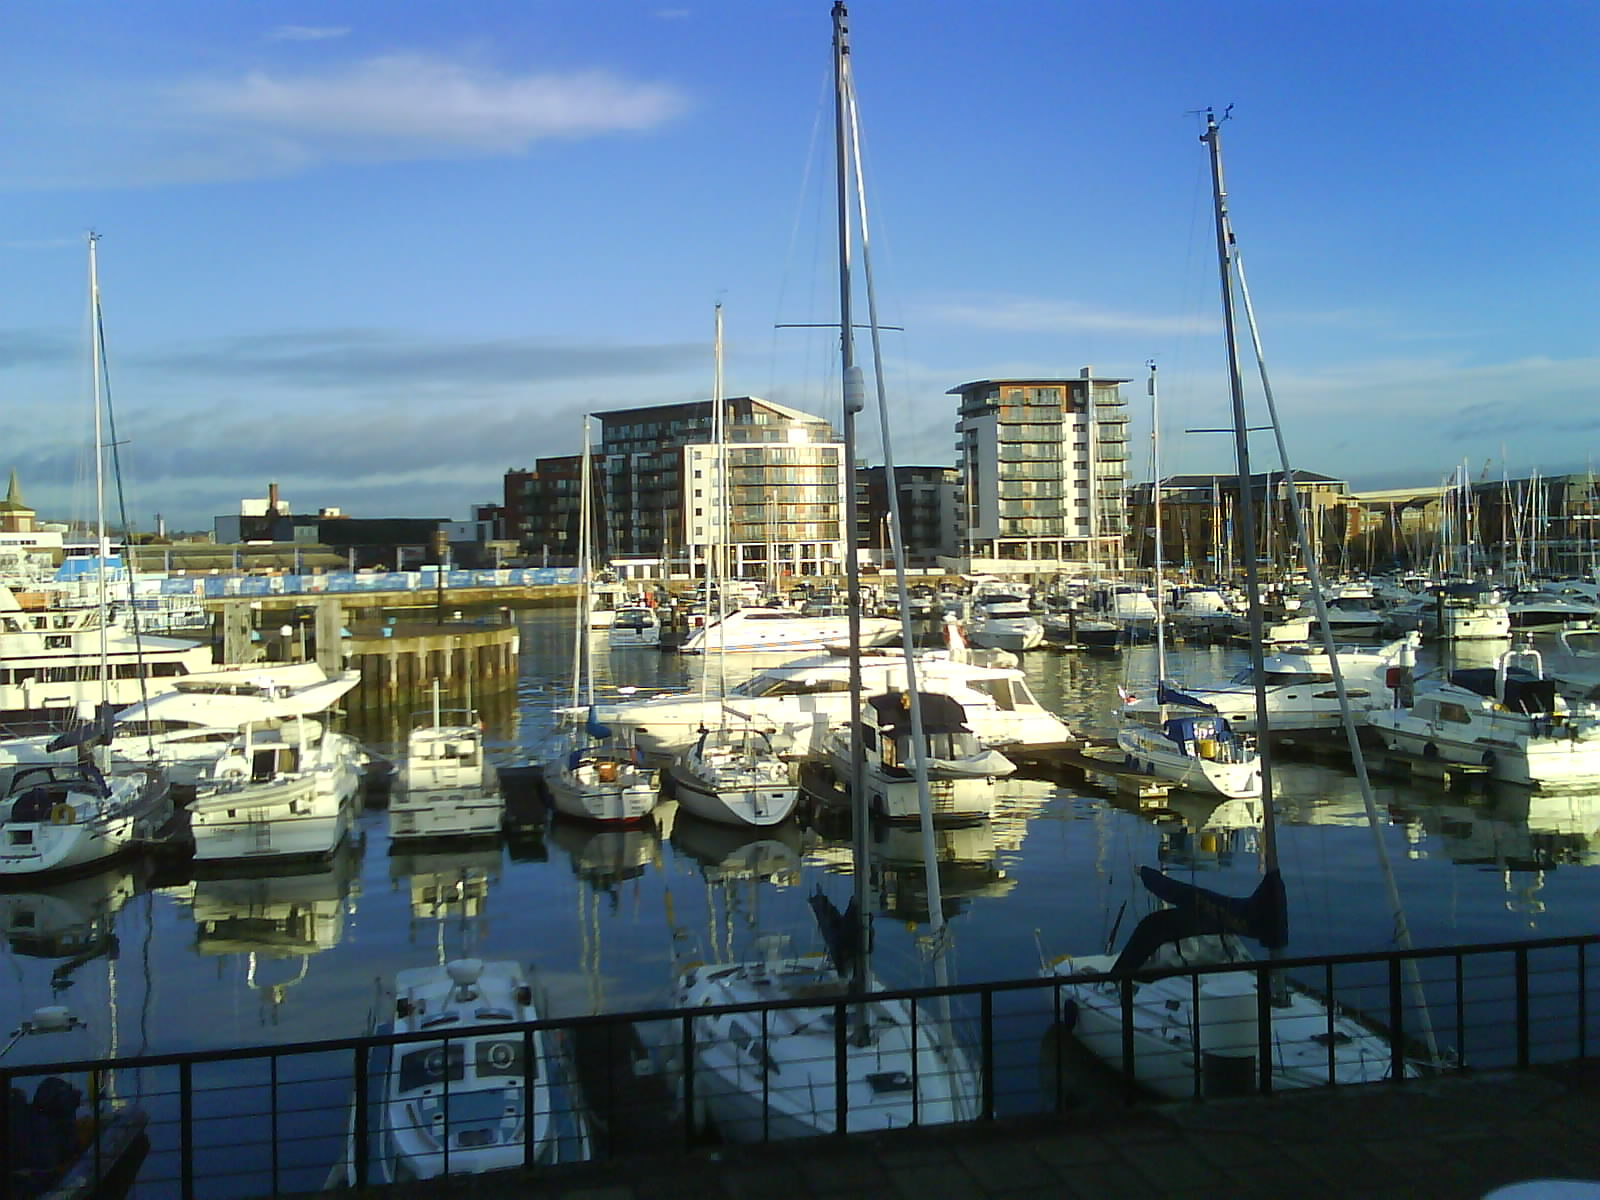 Top 5 Things To Do In Southampton – With Bonus 5 Free Things To Do